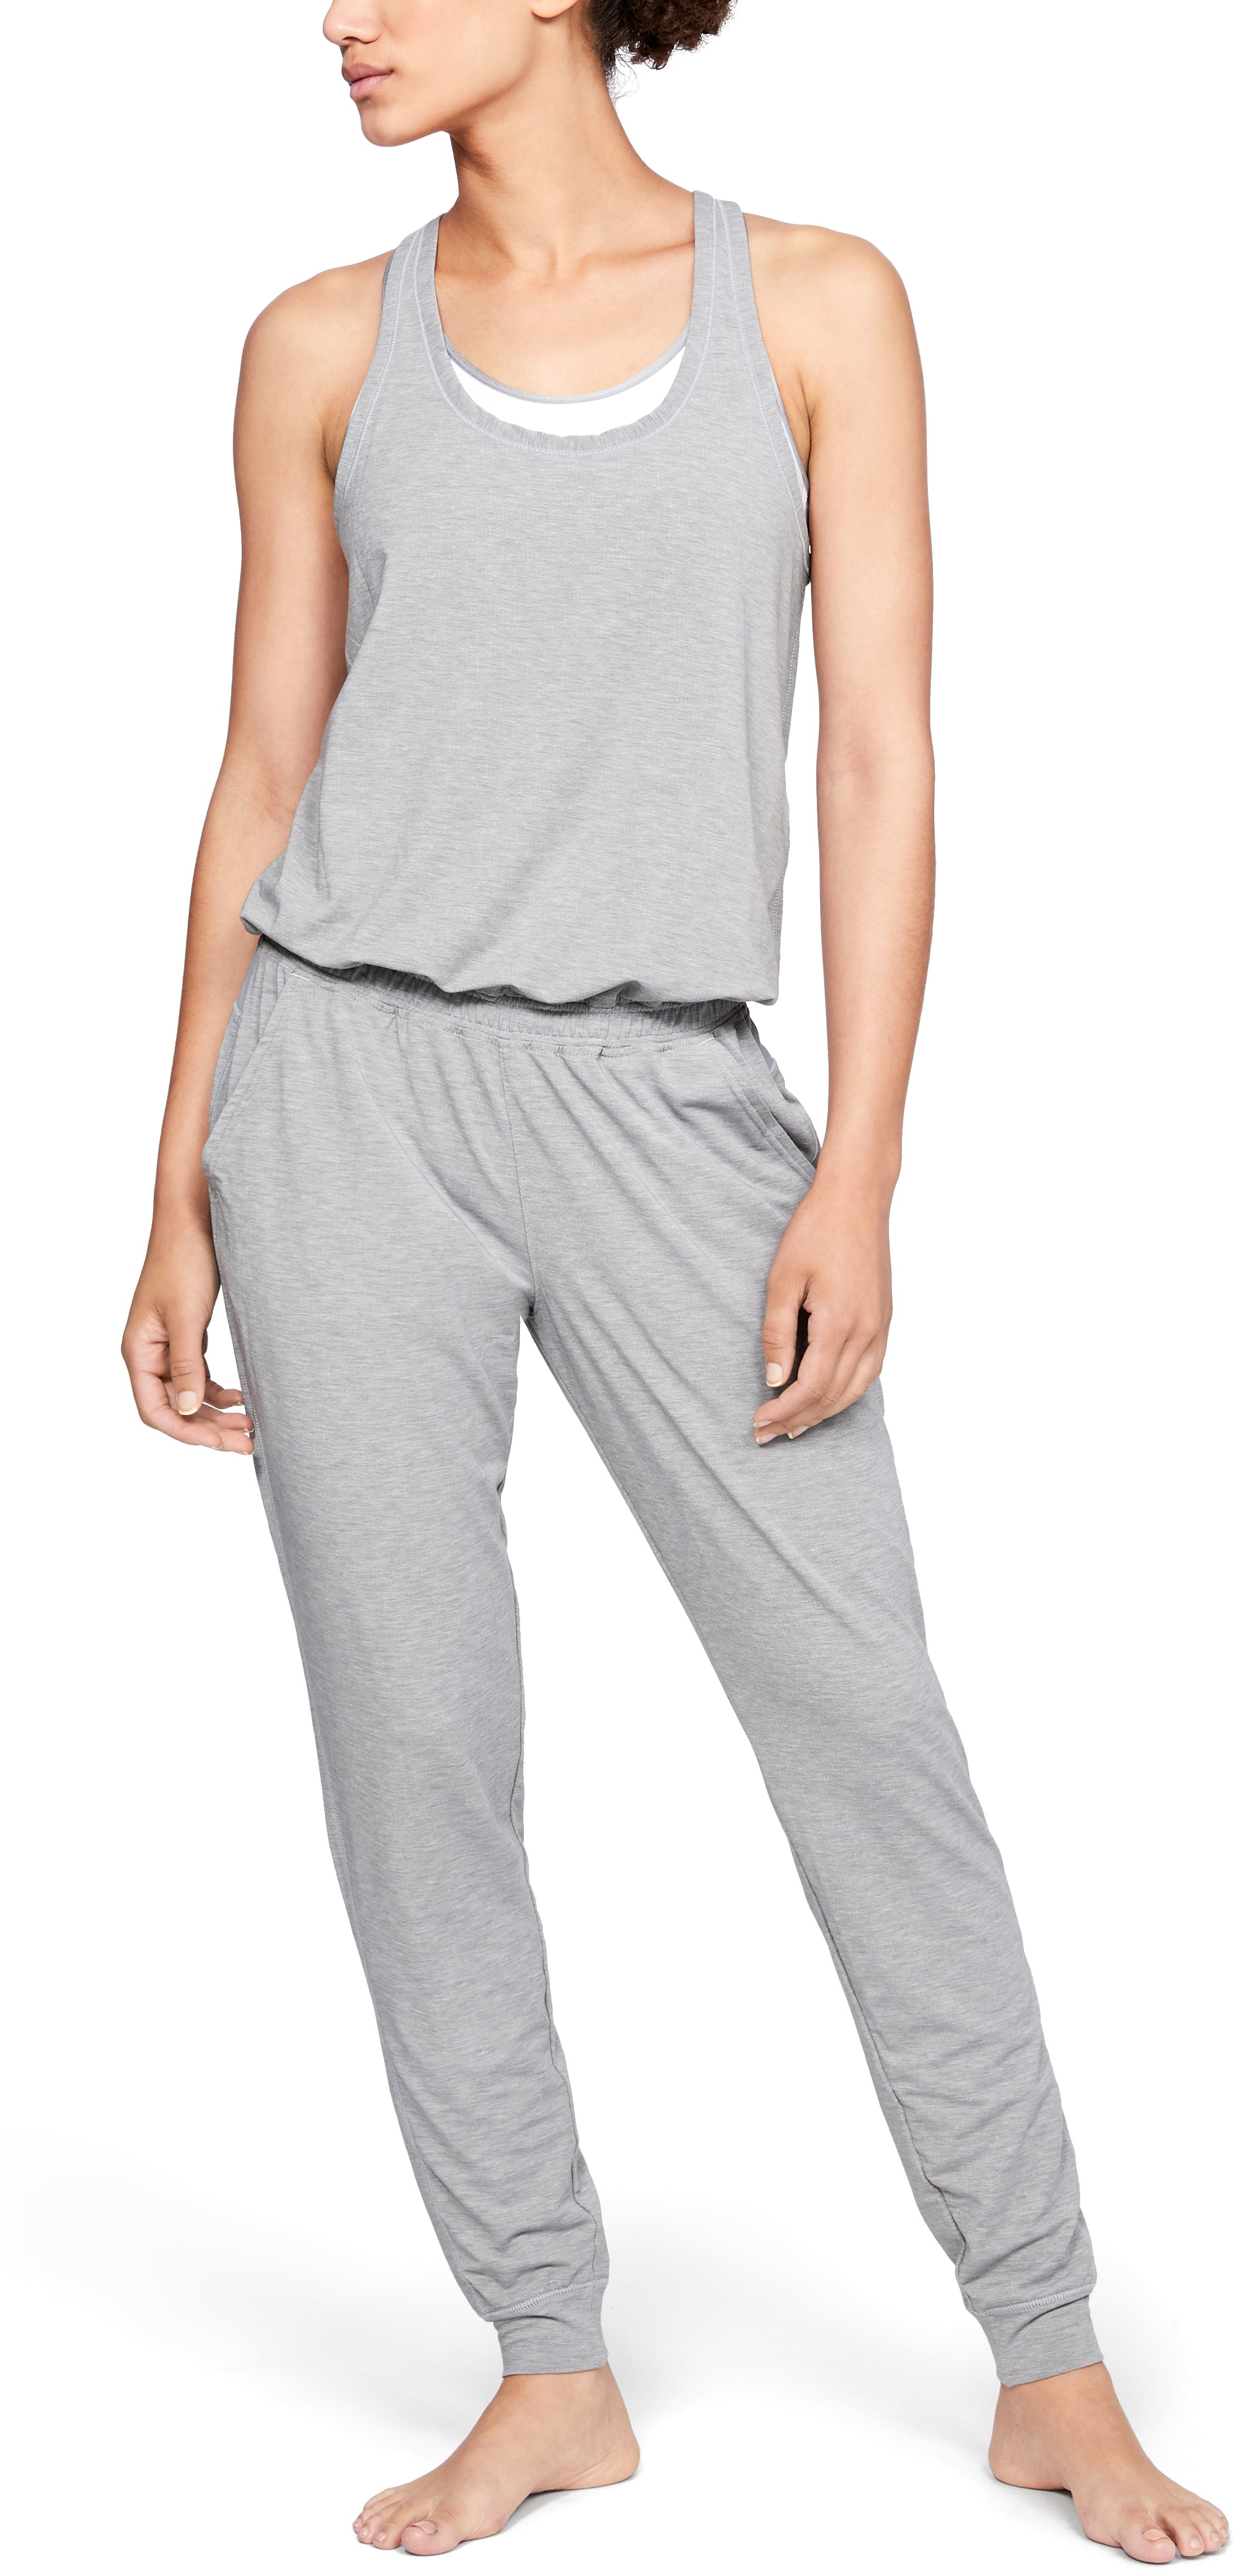 Women's Athlete Recovery Sleepwear™ Romper, STEEL FADE HEATHER,